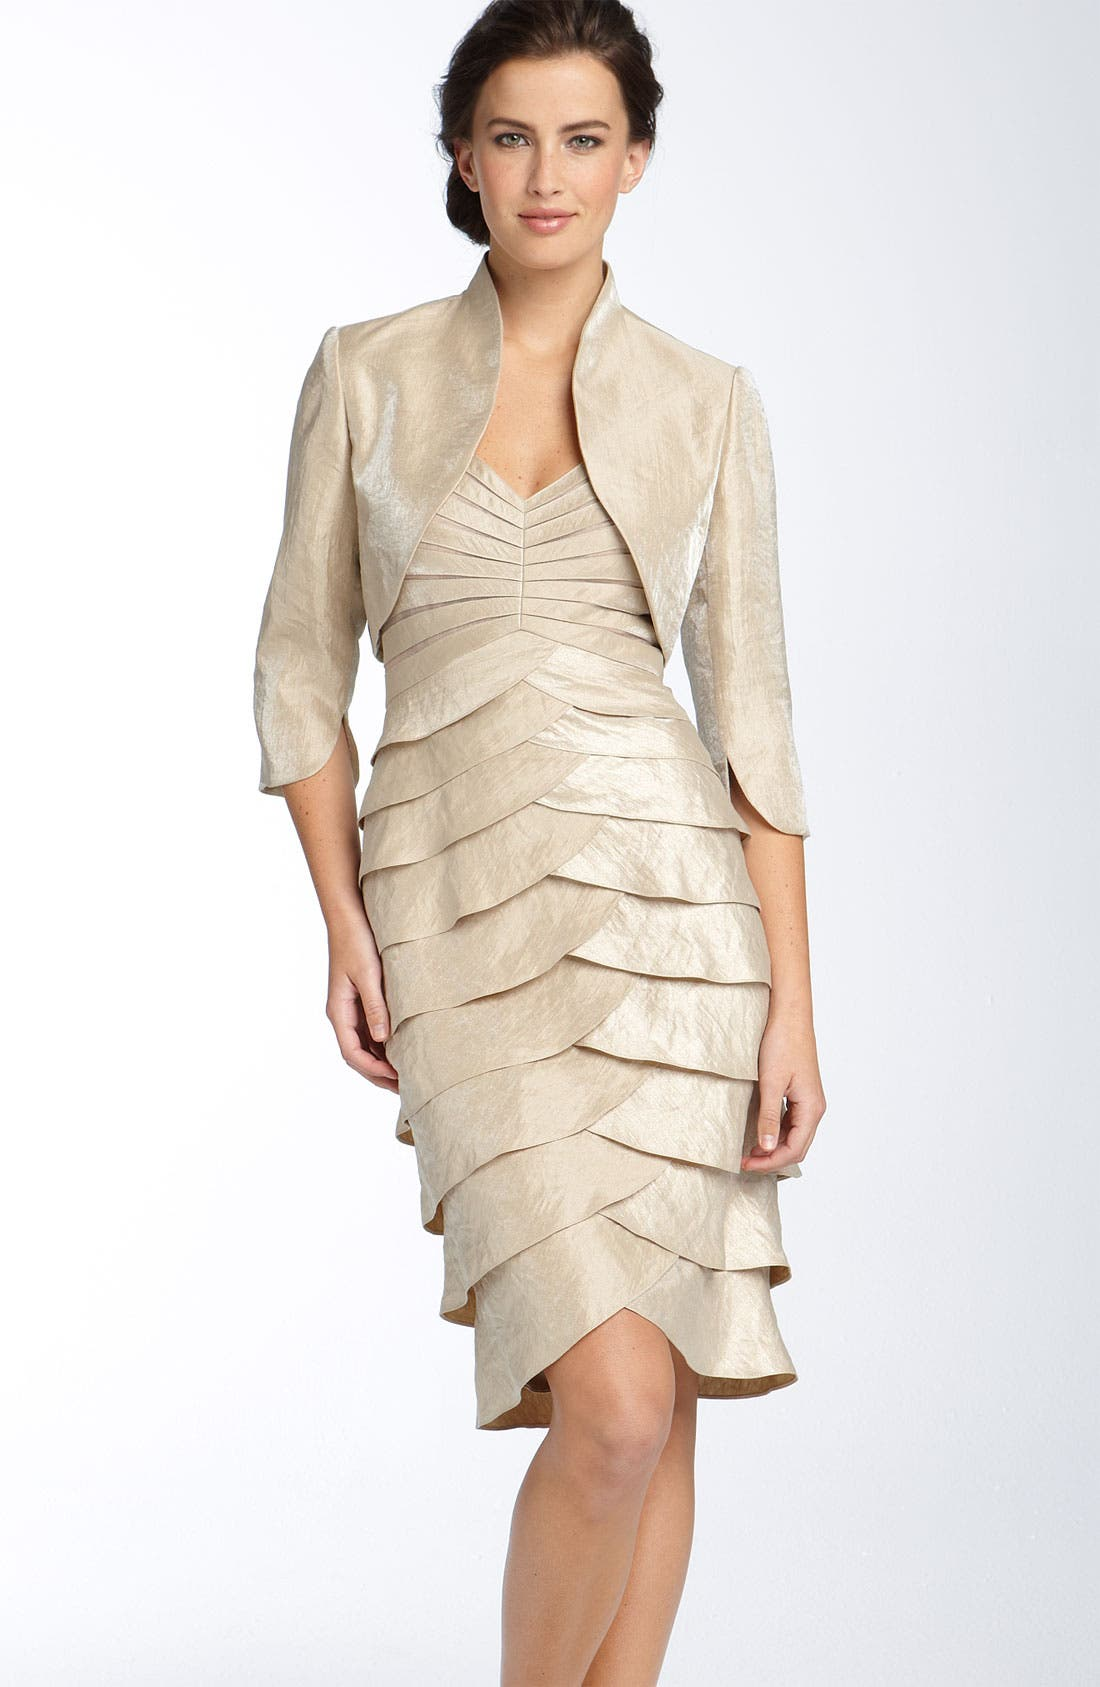 Main Image - Adrianna Papell Tiered Hammered Satin Sheath Dress & Bolero (Regular & Petite)